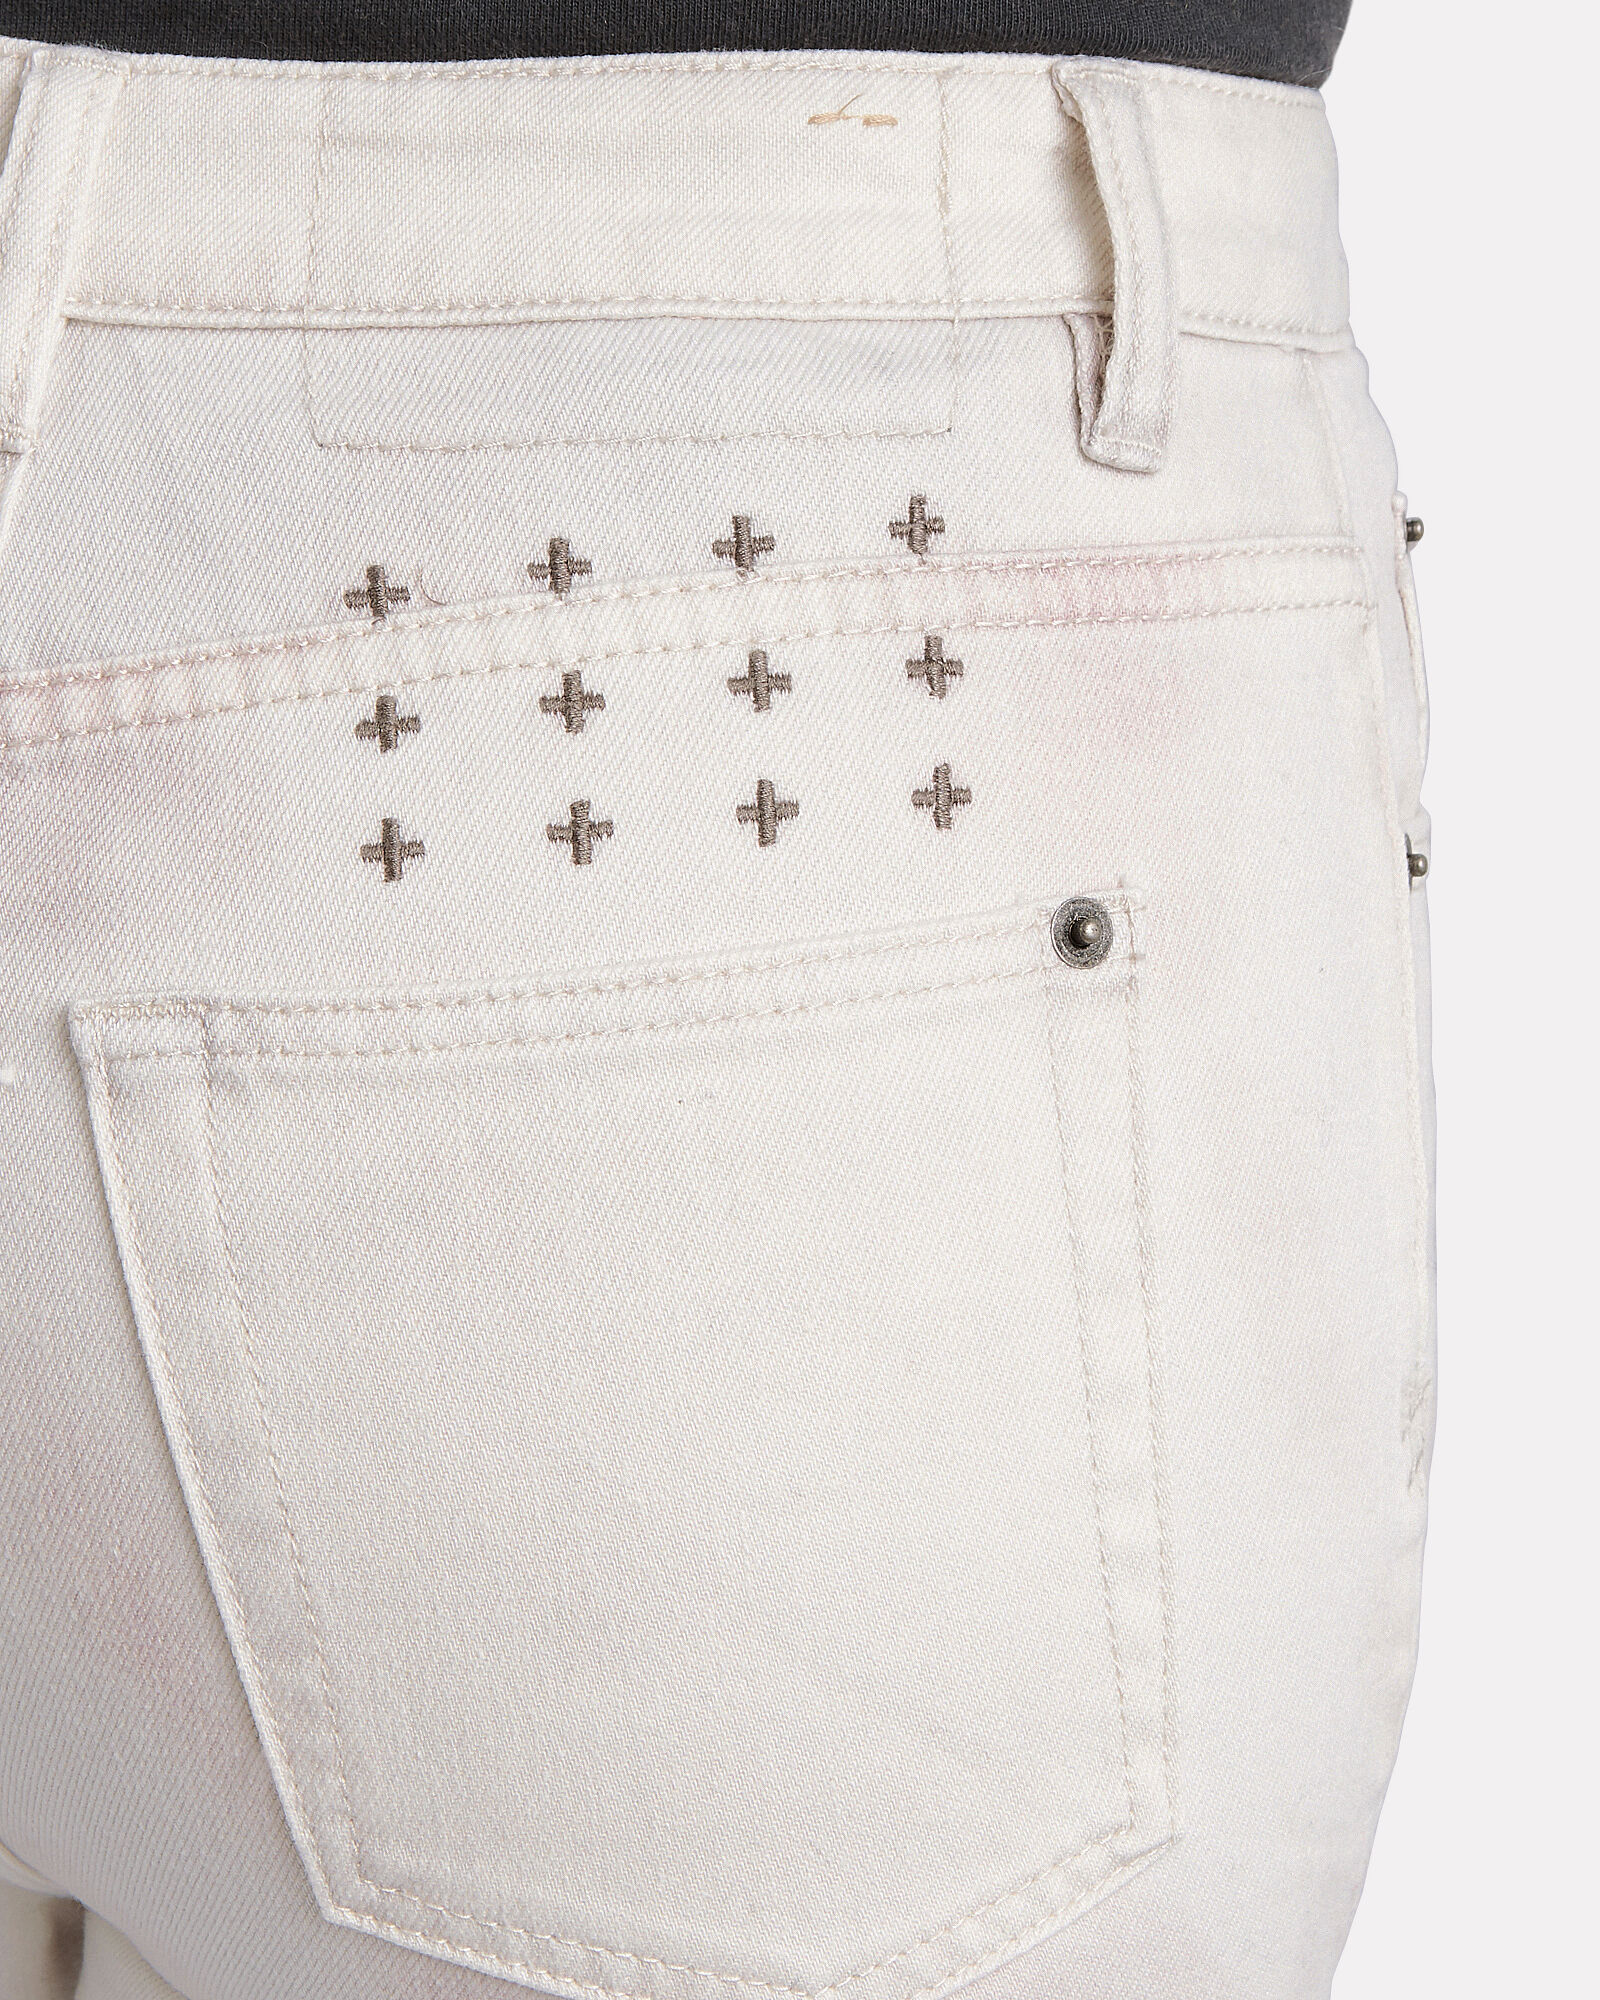 Chlo Wasted High-Rise Jeans, MAUVE/WHITE DENIM, hi-res